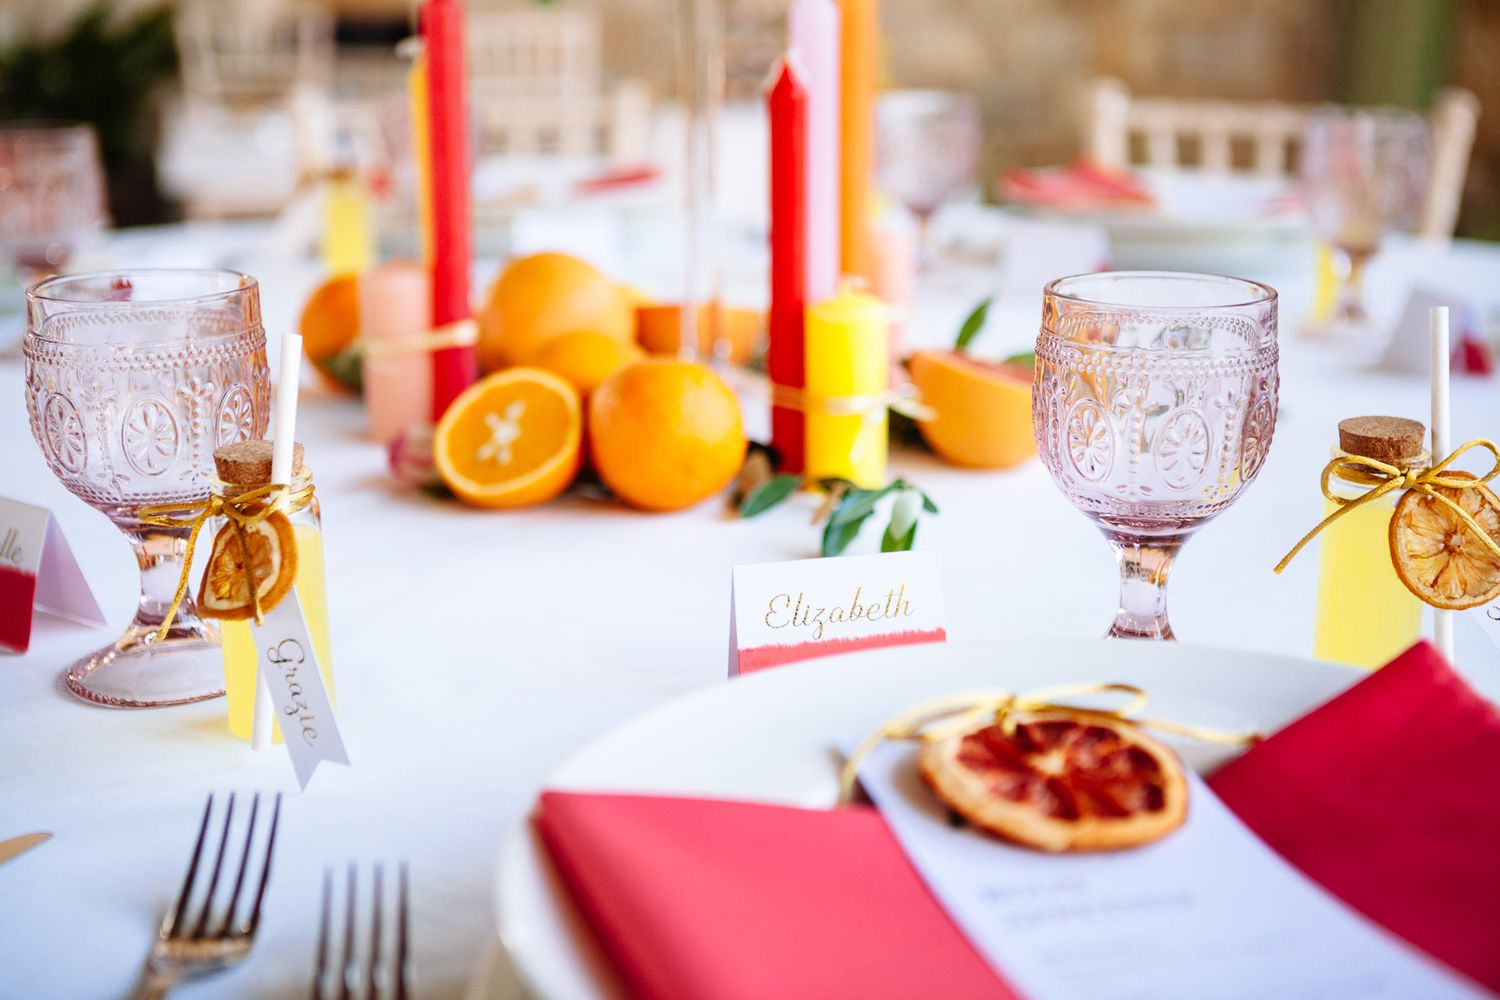 bright and bold table setting for intimate wedding in marina di pietrasanta, tuscany, italy